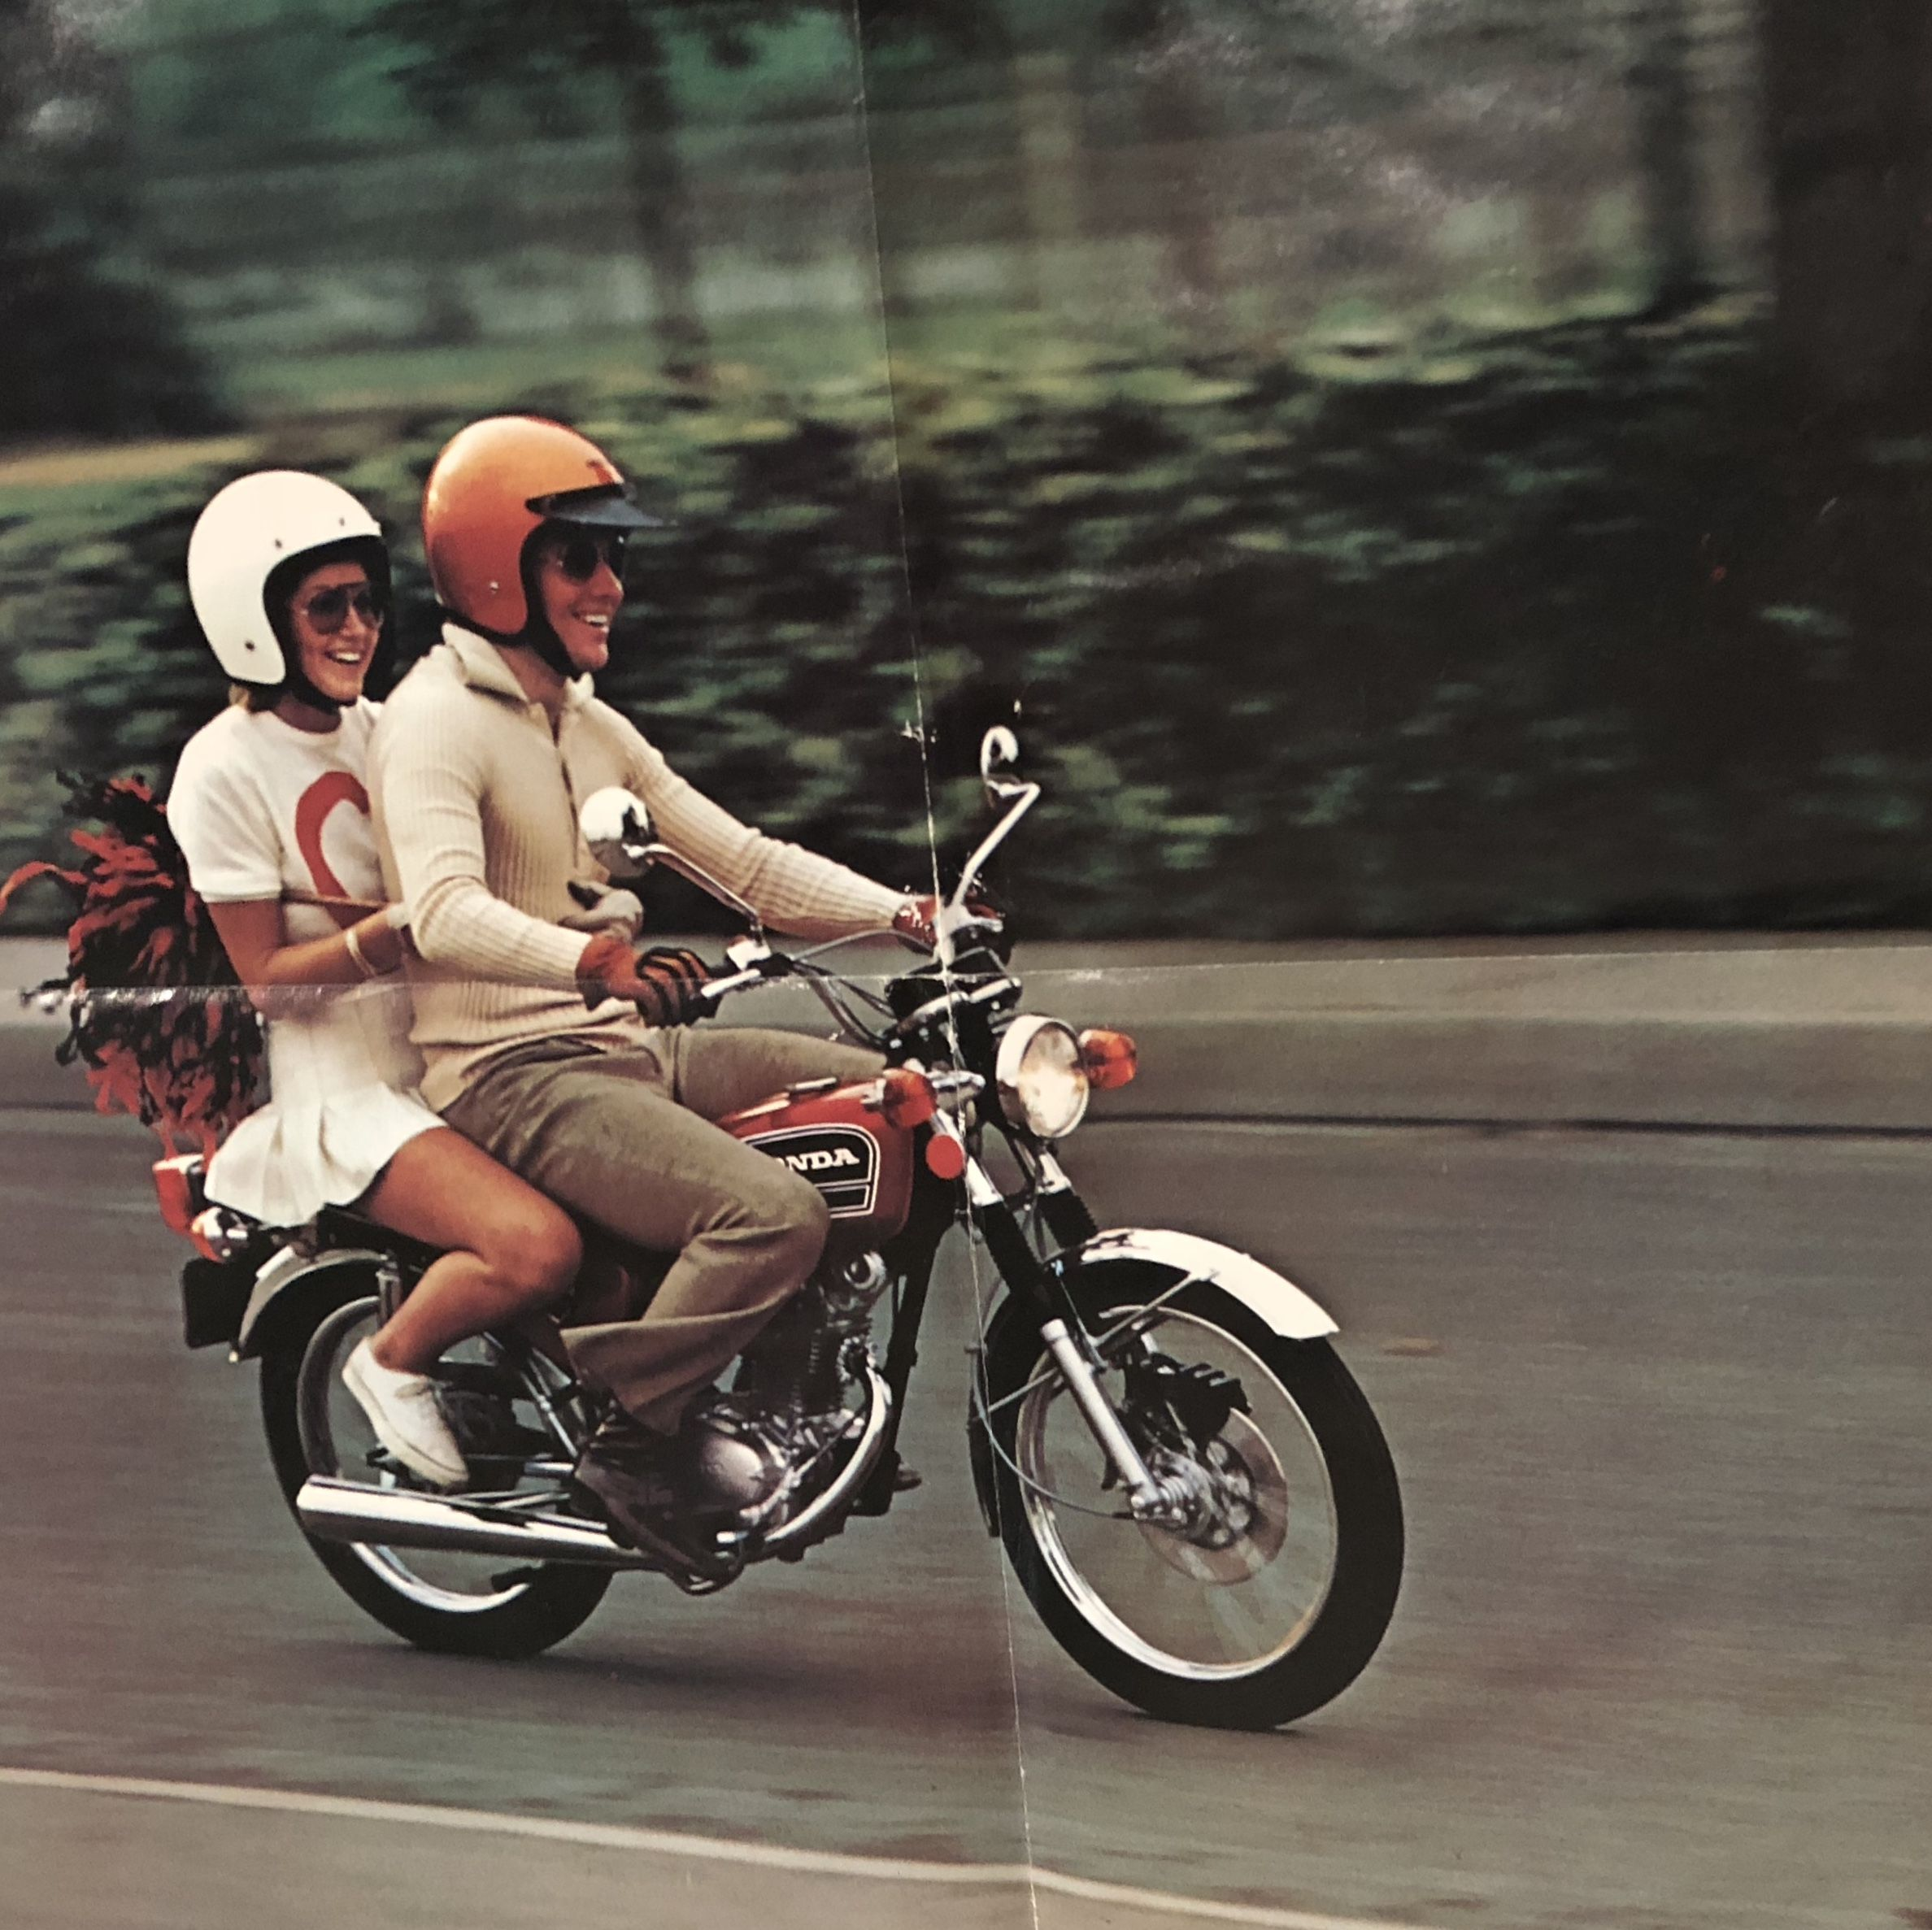 From 1974 Honda Cb125 Brochure